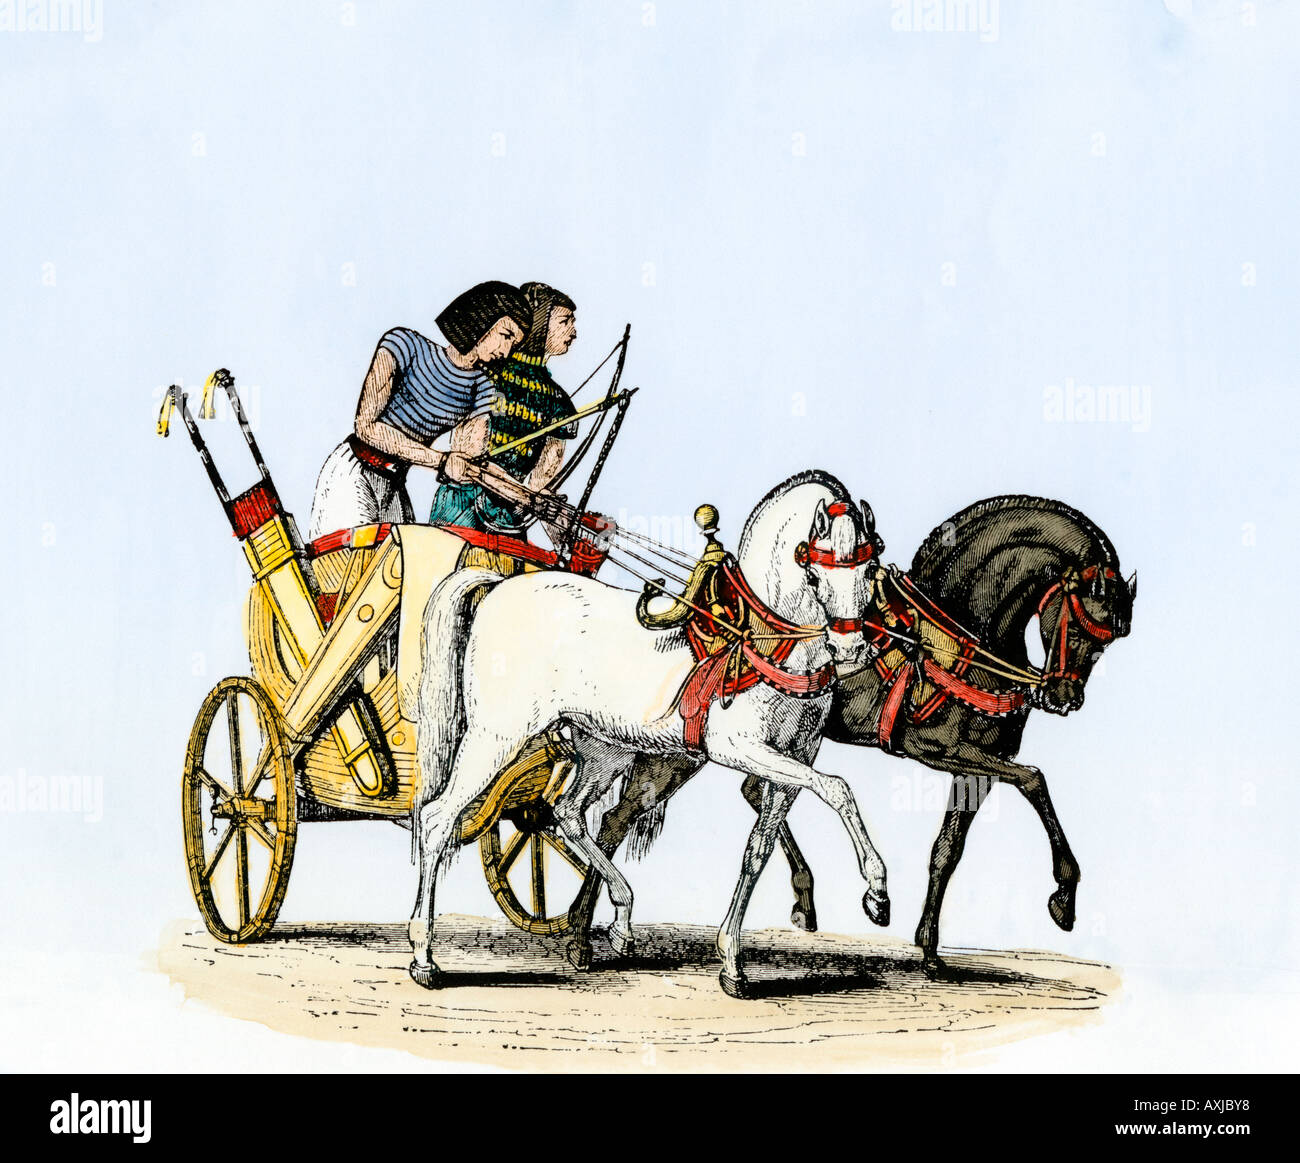 Chariot drawn by two horses in ancient Egypt - Stock Image